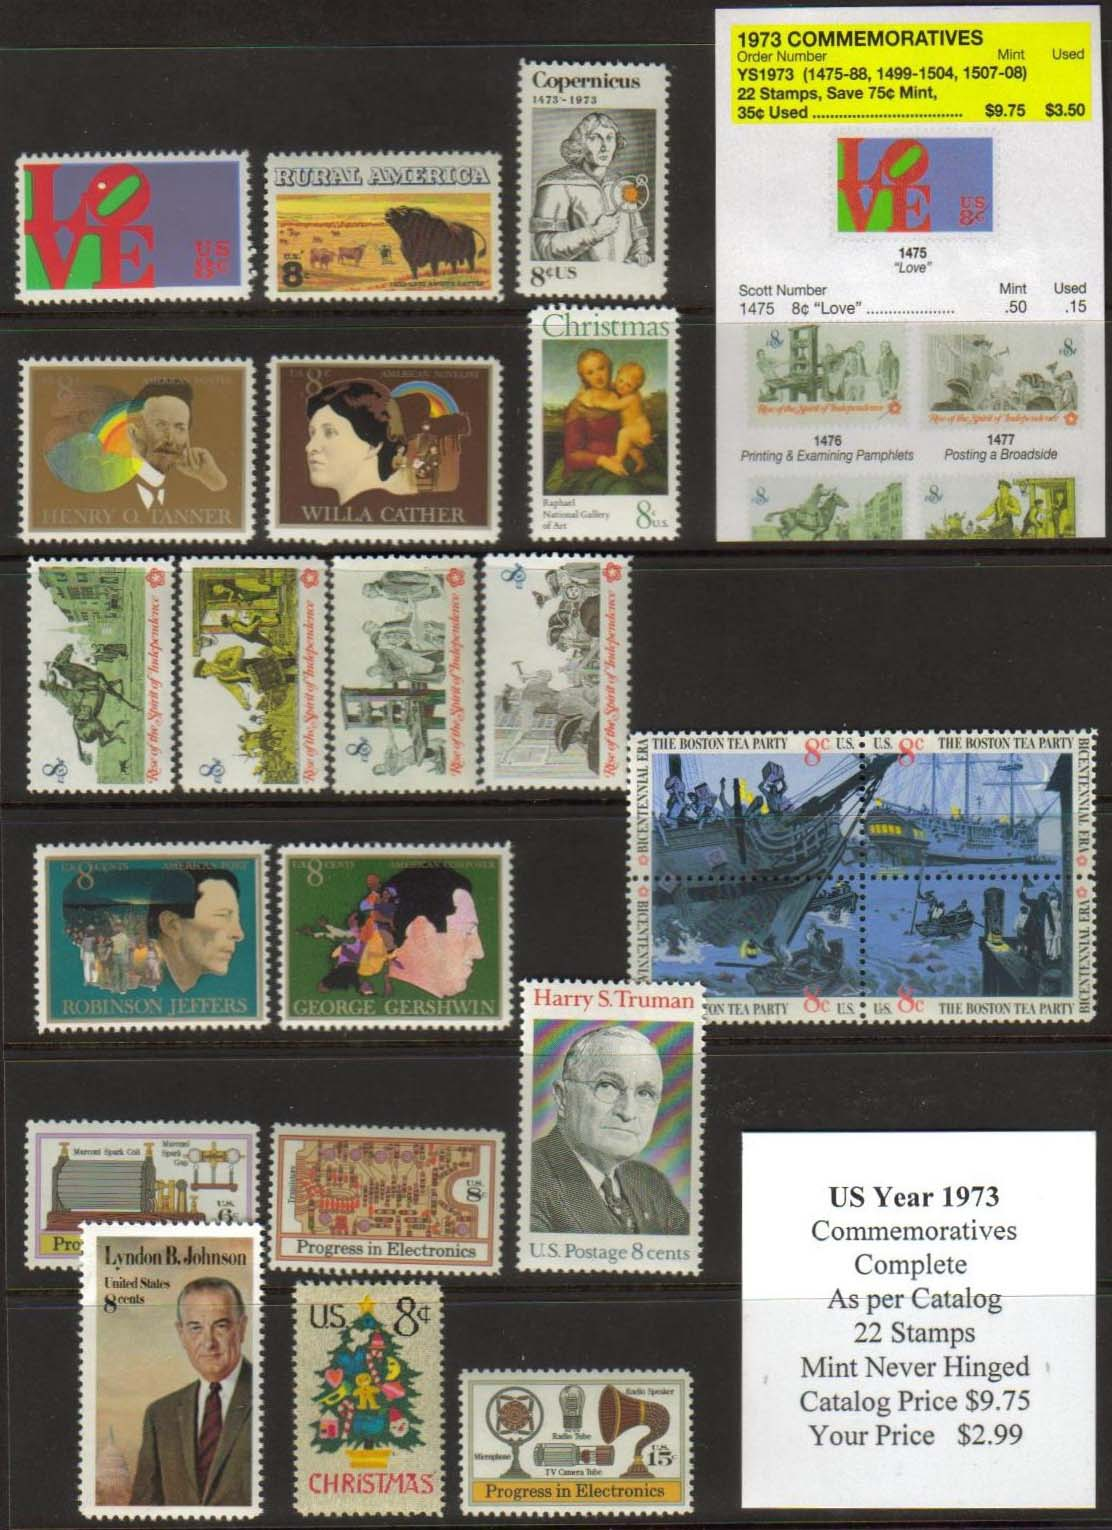 1973 COMMEMORATIVES, 22 STAMPS